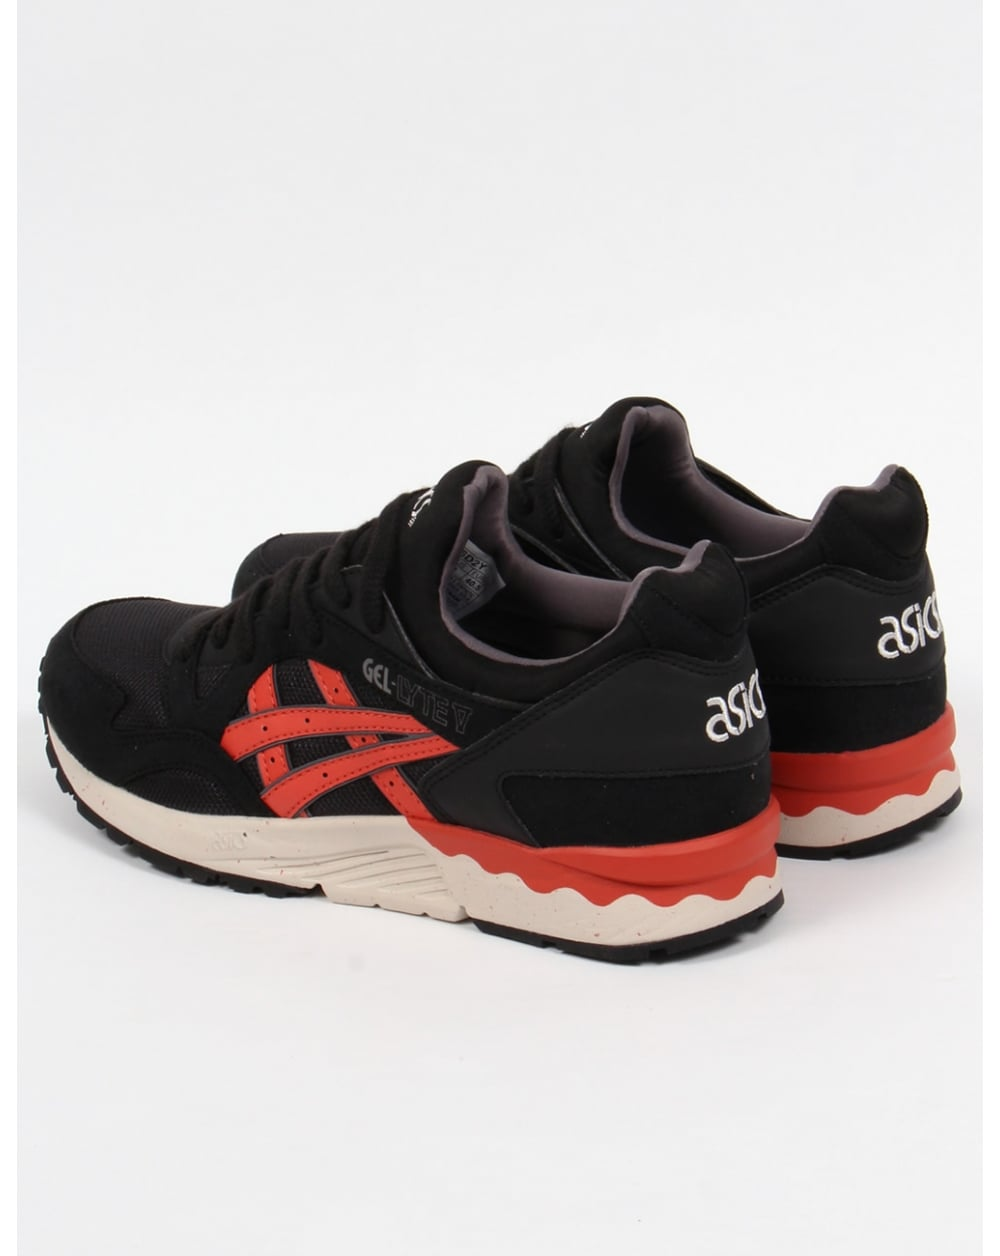 asics gel lyte v trainers black chili red 5 shoes runners. Black Bedroom Furniture Sets. Home Design Ideas